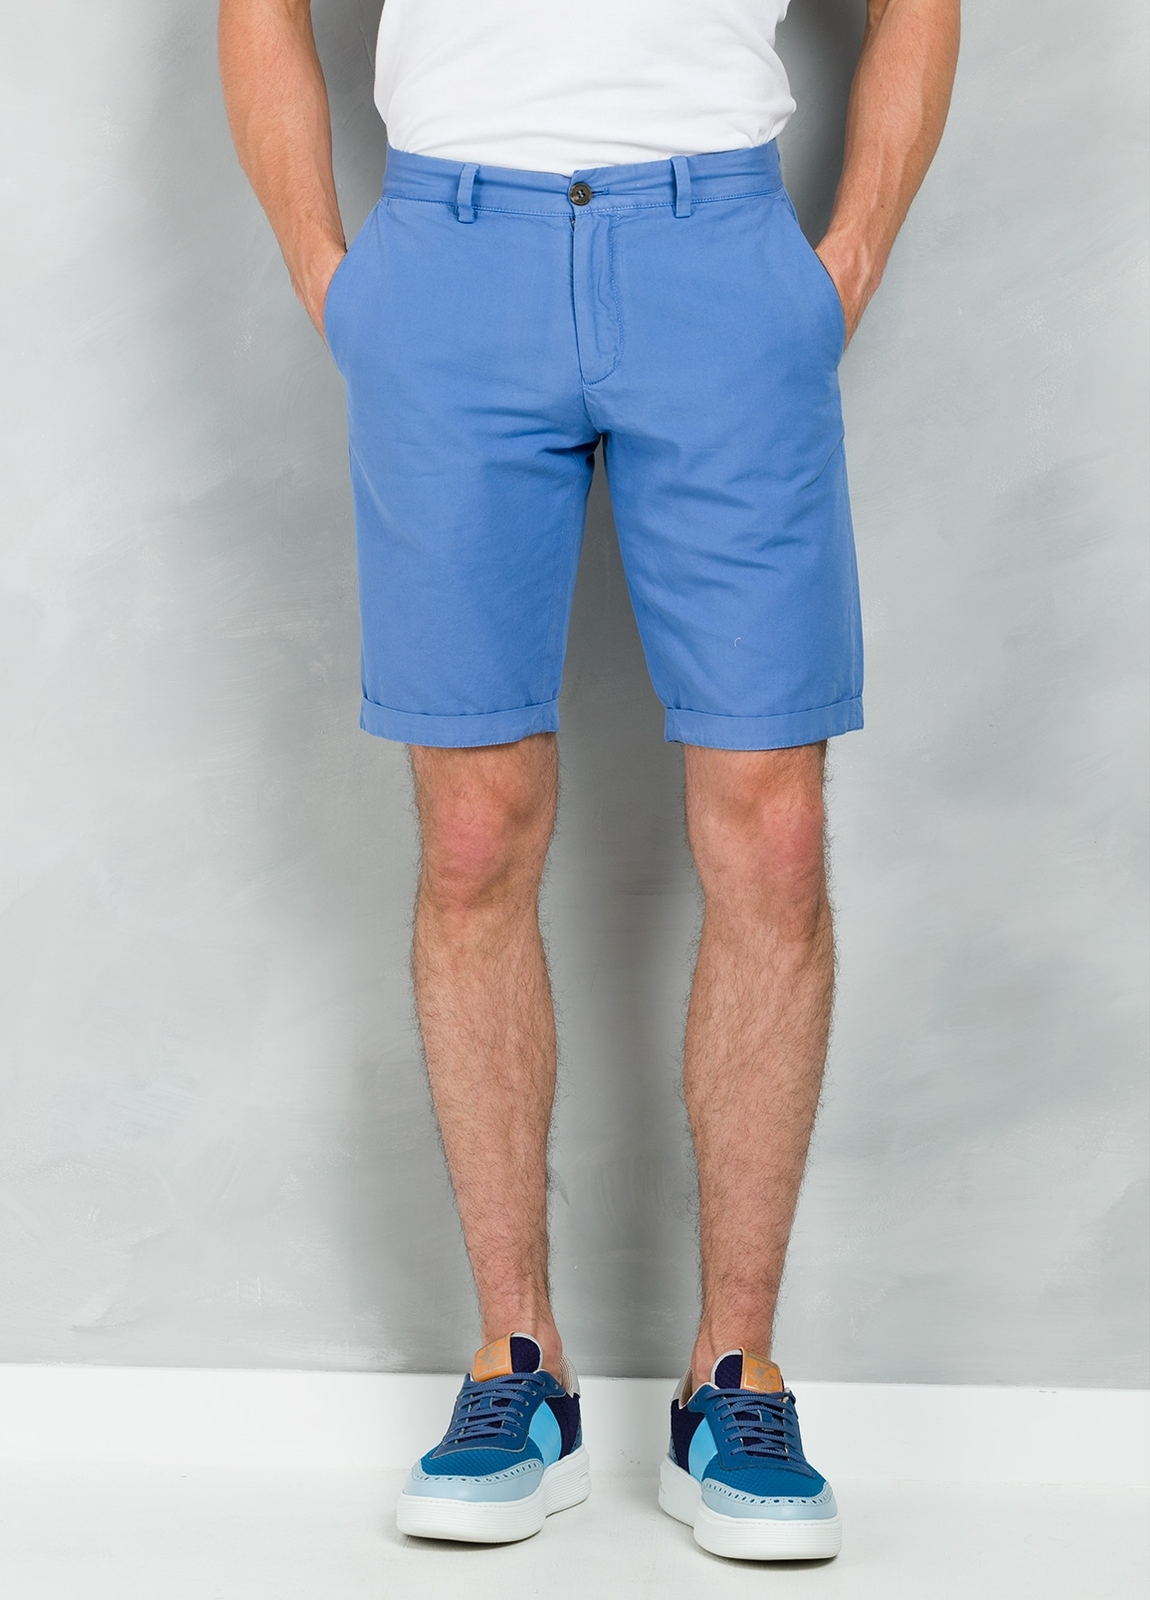 Short Furest Casual Wear color azul, 100% Algodón.